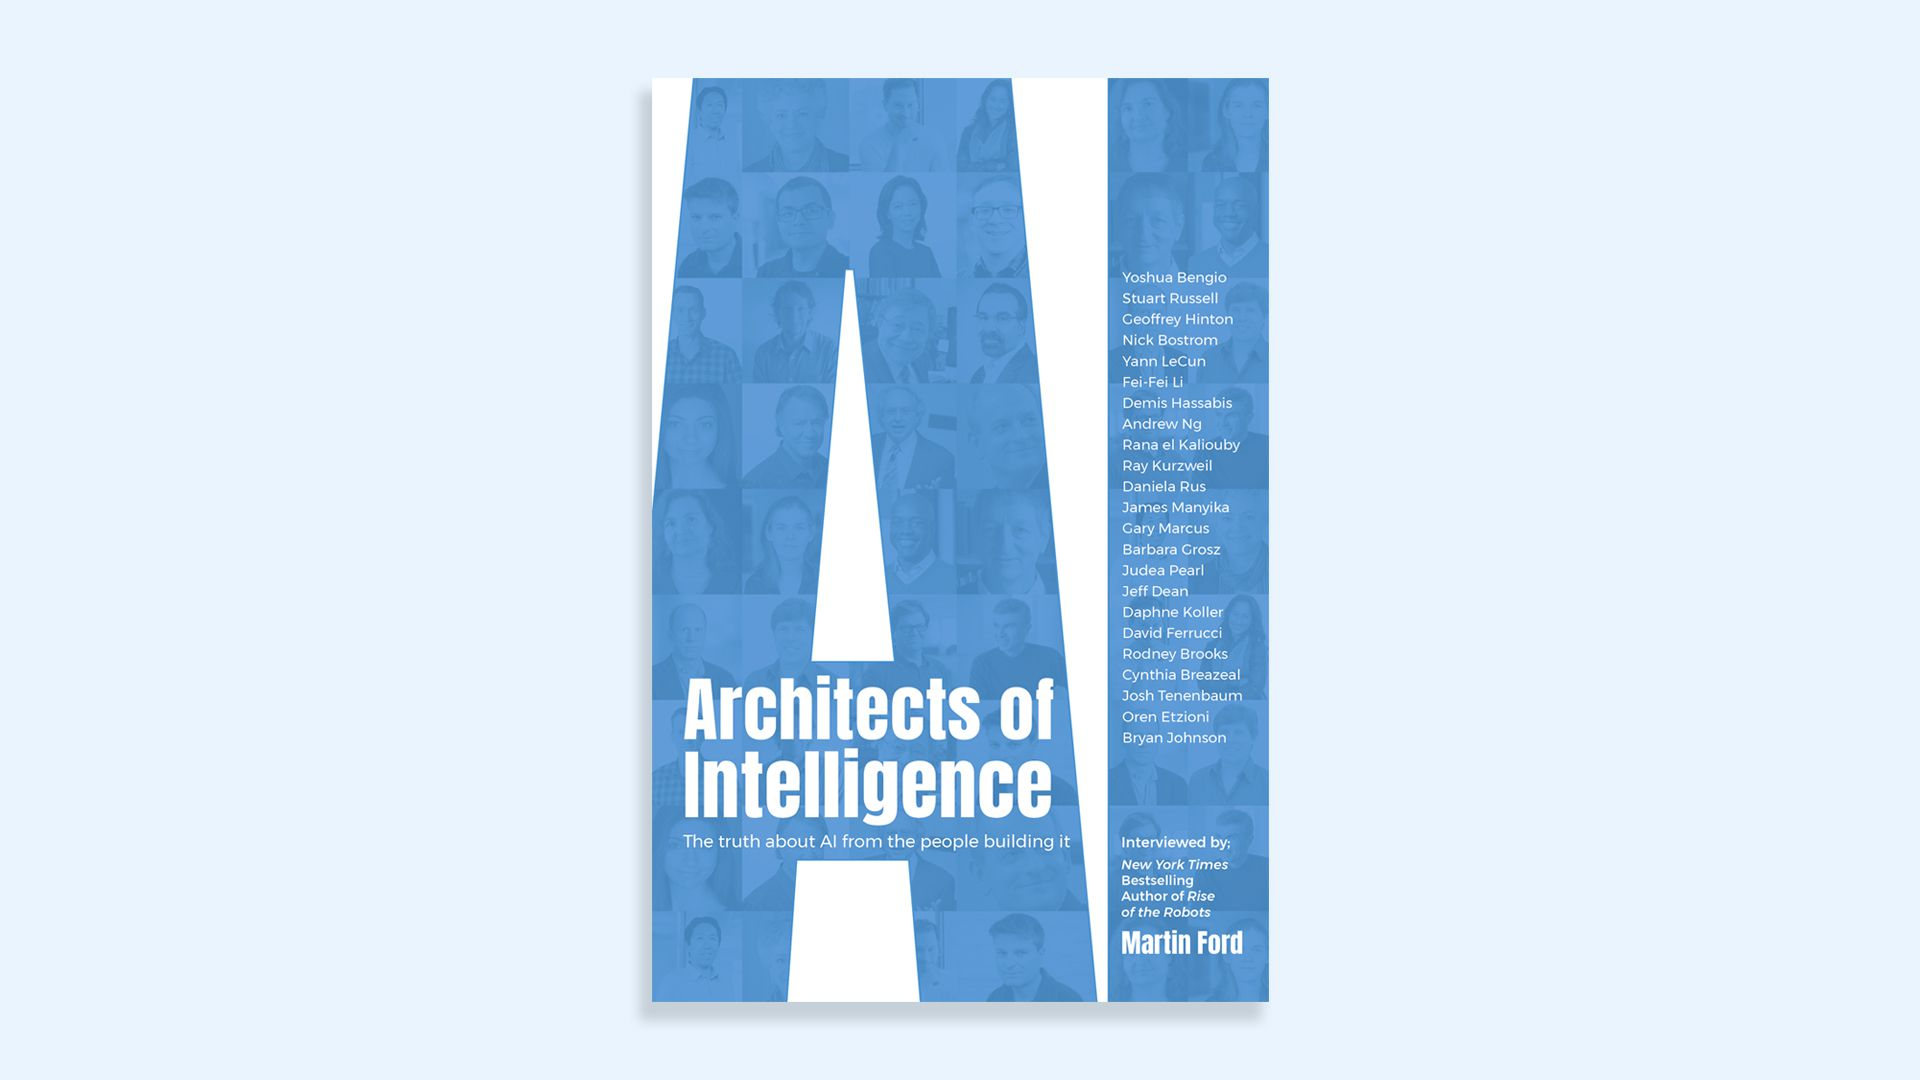 Photo of Architects of Intelligence book cover